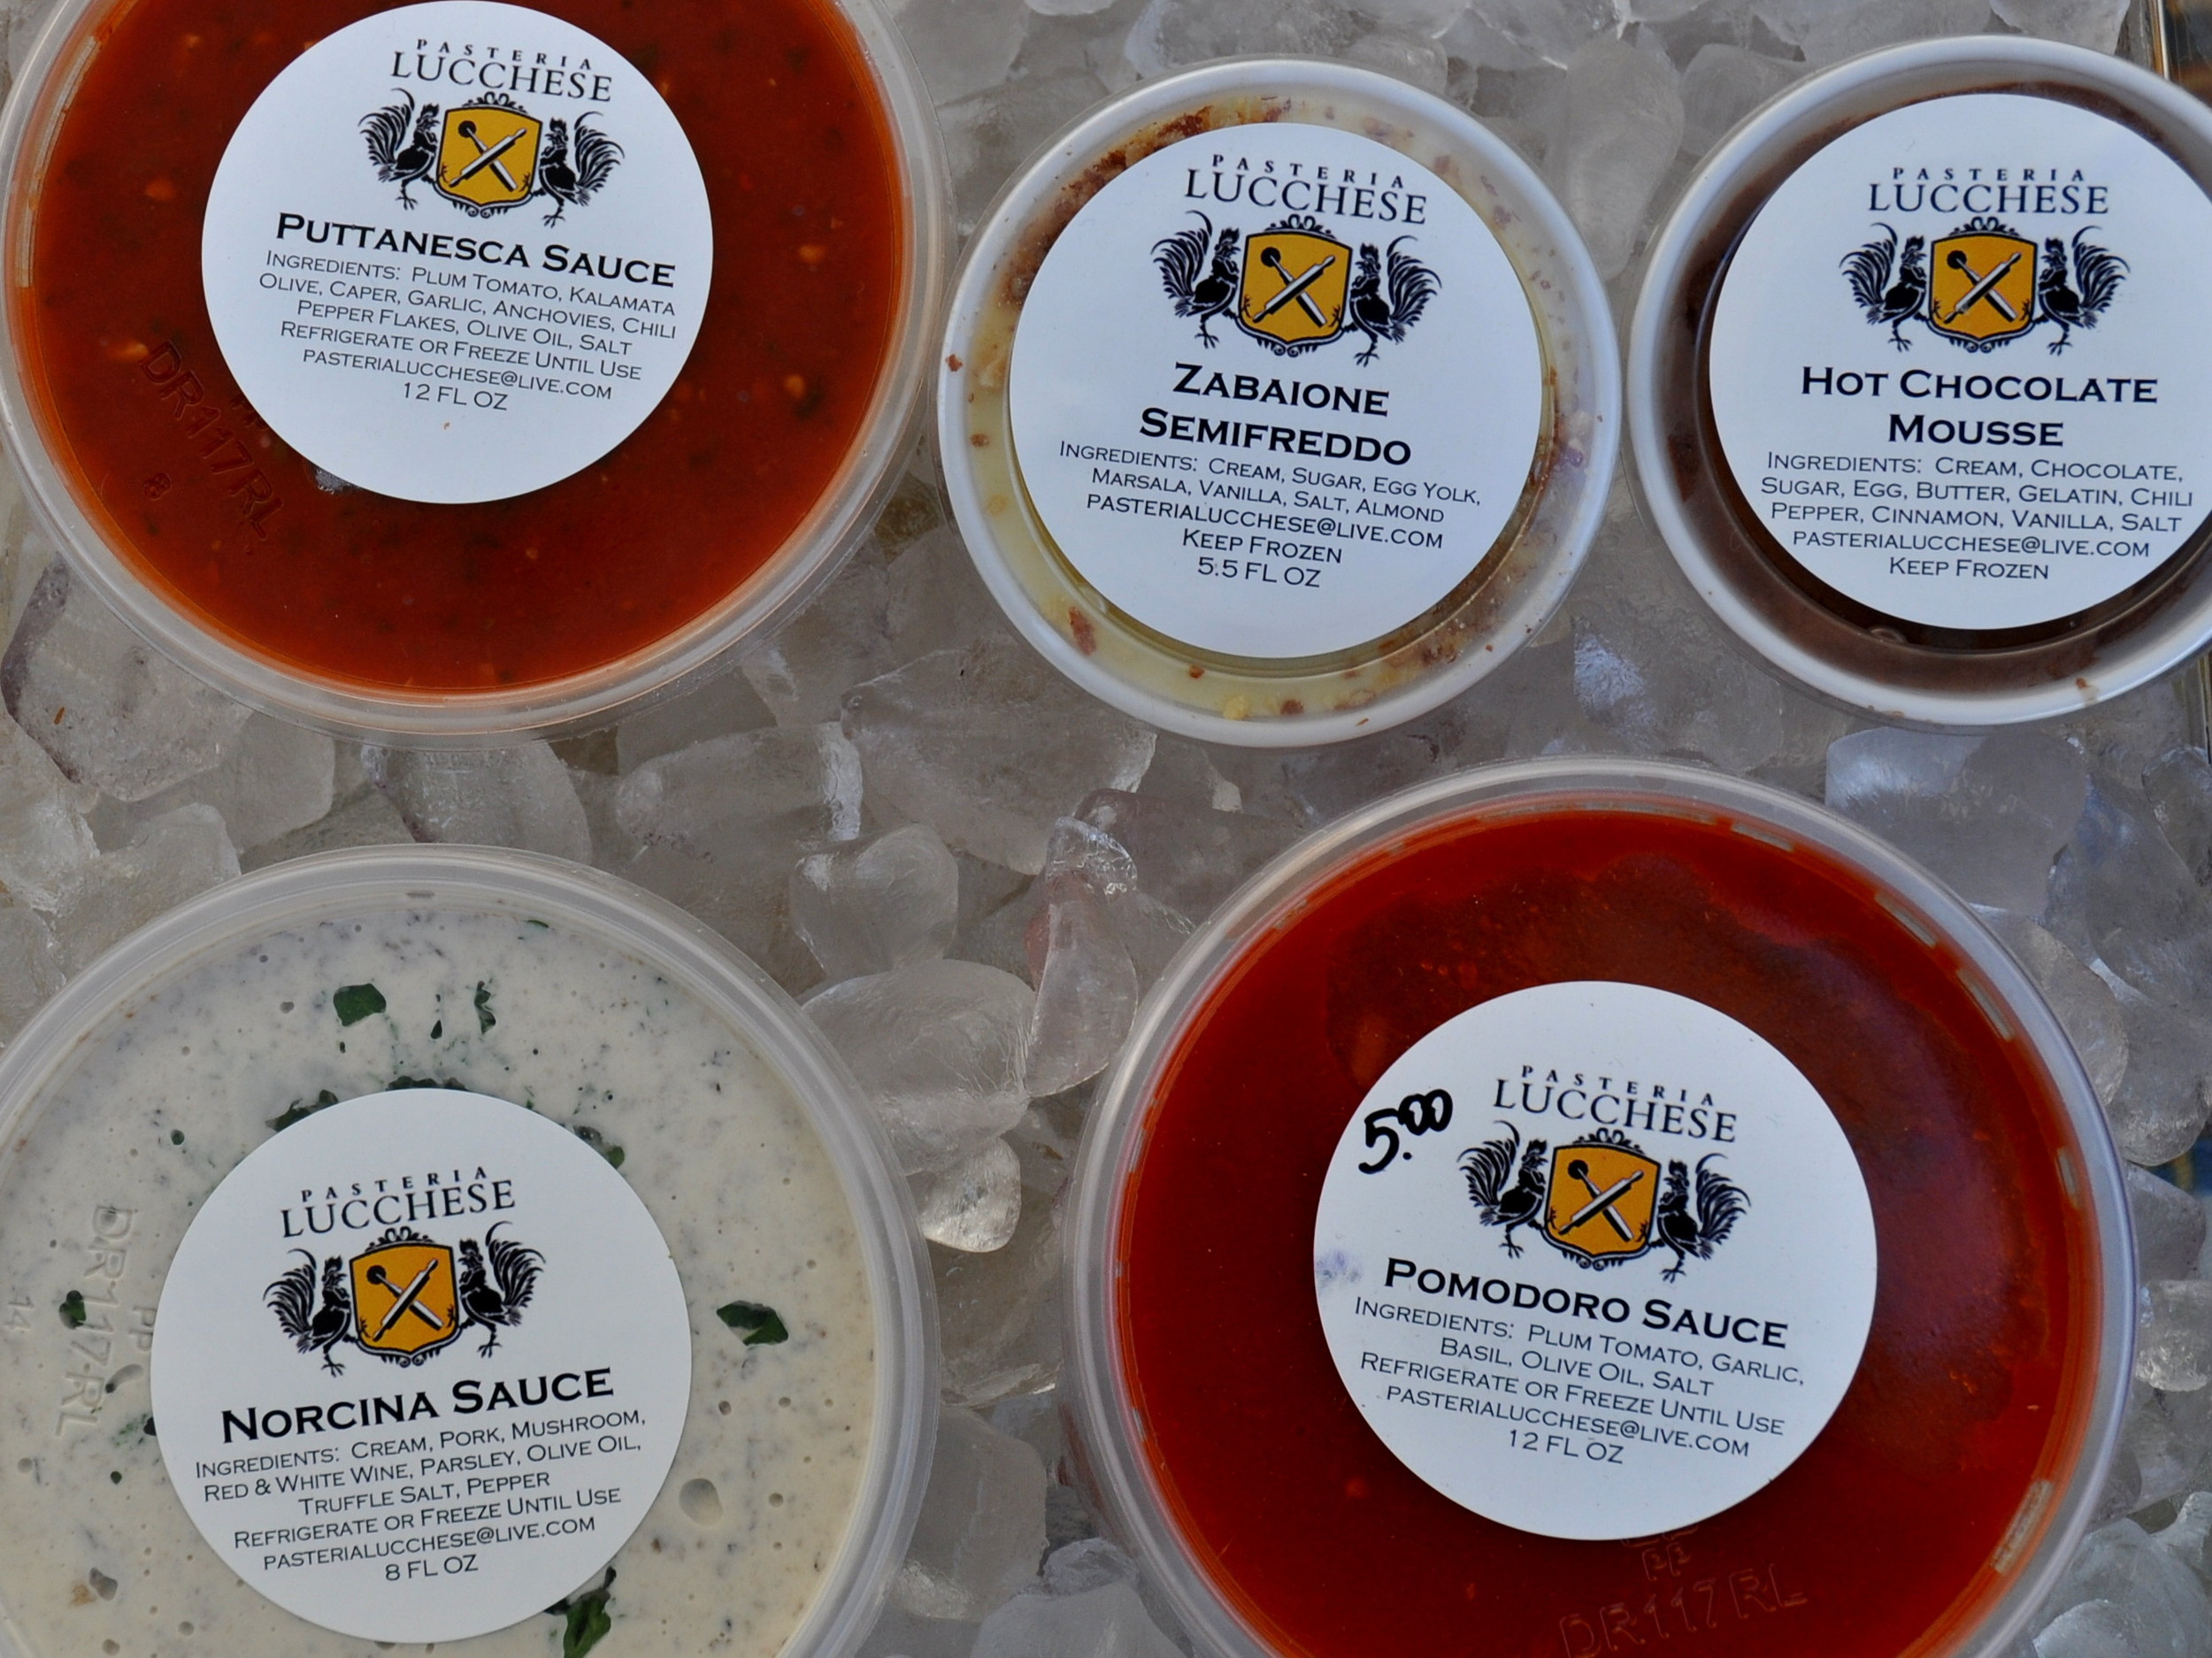 Pastas sauces and desserts from Pasteria Lucchese. Photo copyright 2014 by Zachary D. Lyons.